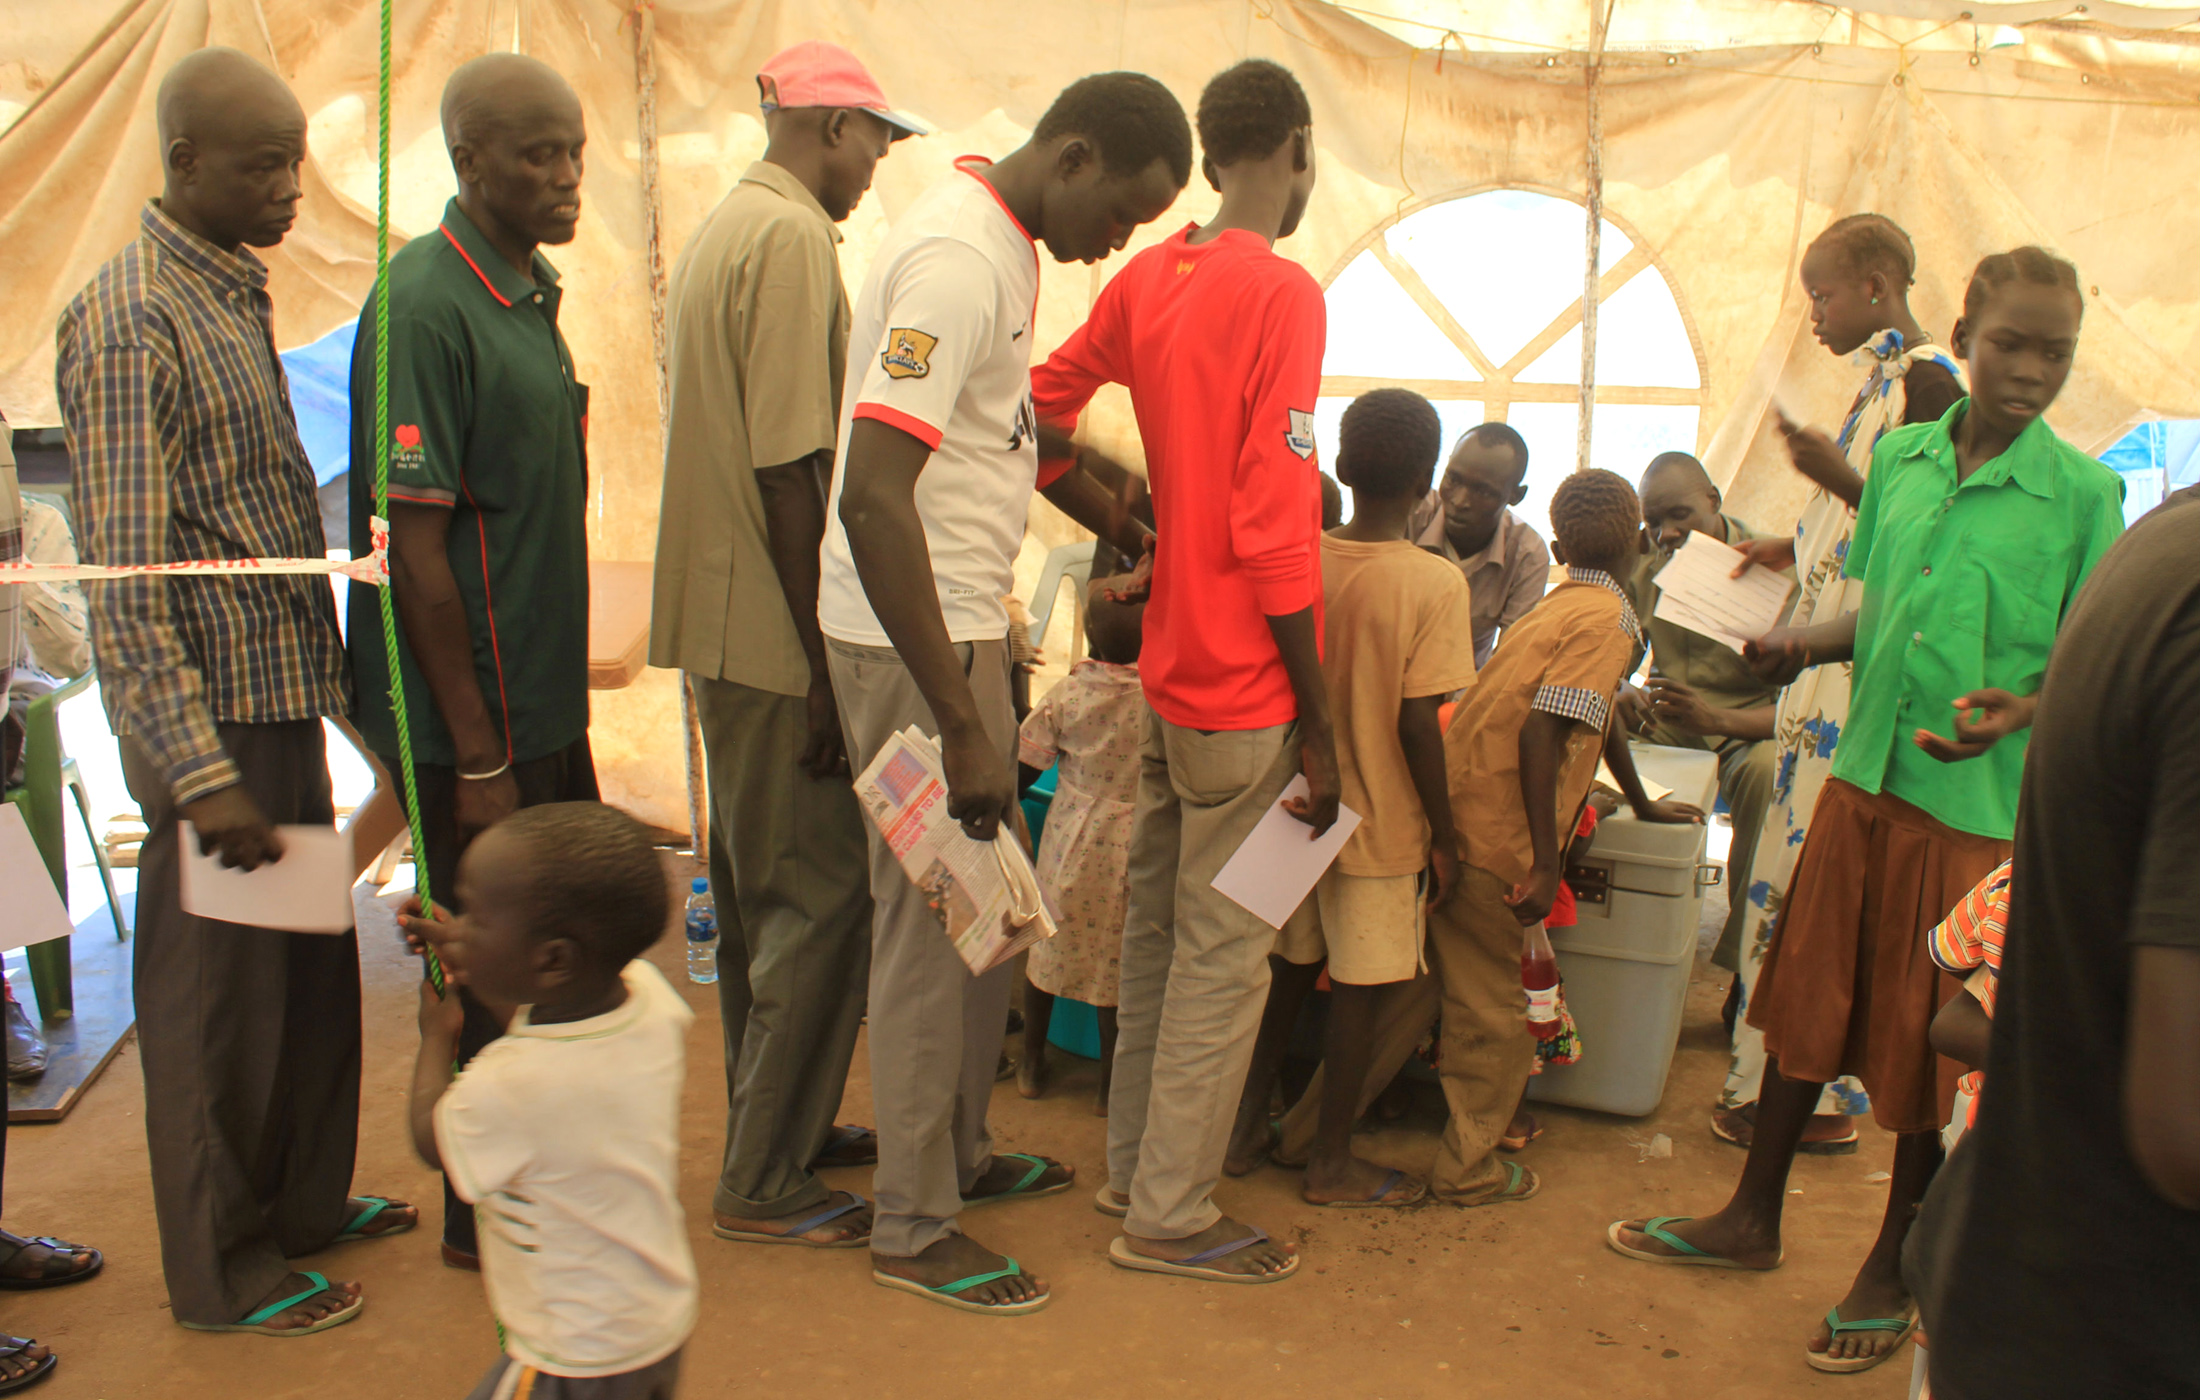 Residents of the Tomping camp in Juba wait in line for a cholera vaccination